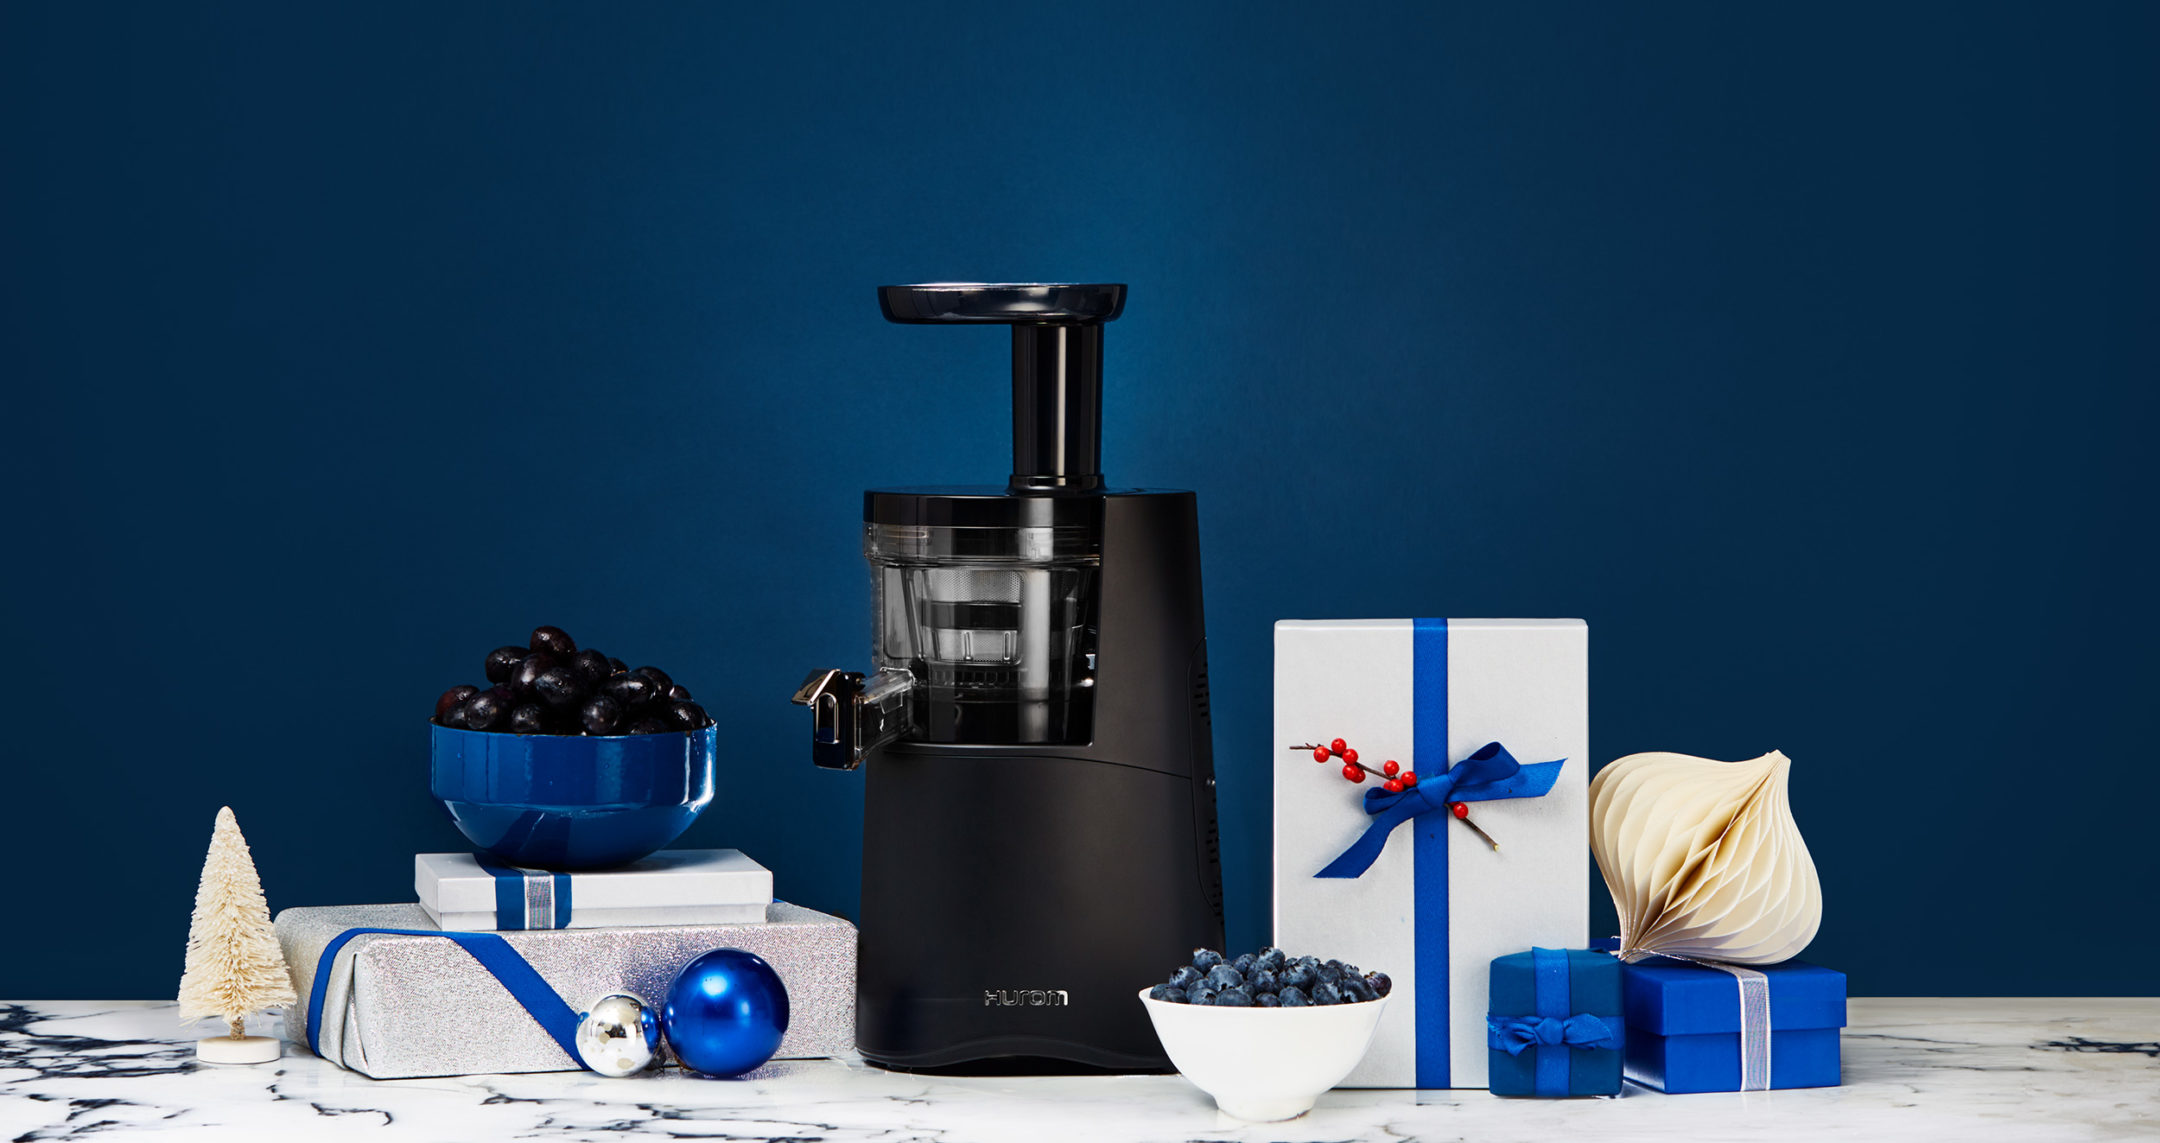 hurom juicer on blue background surrounded by gifts